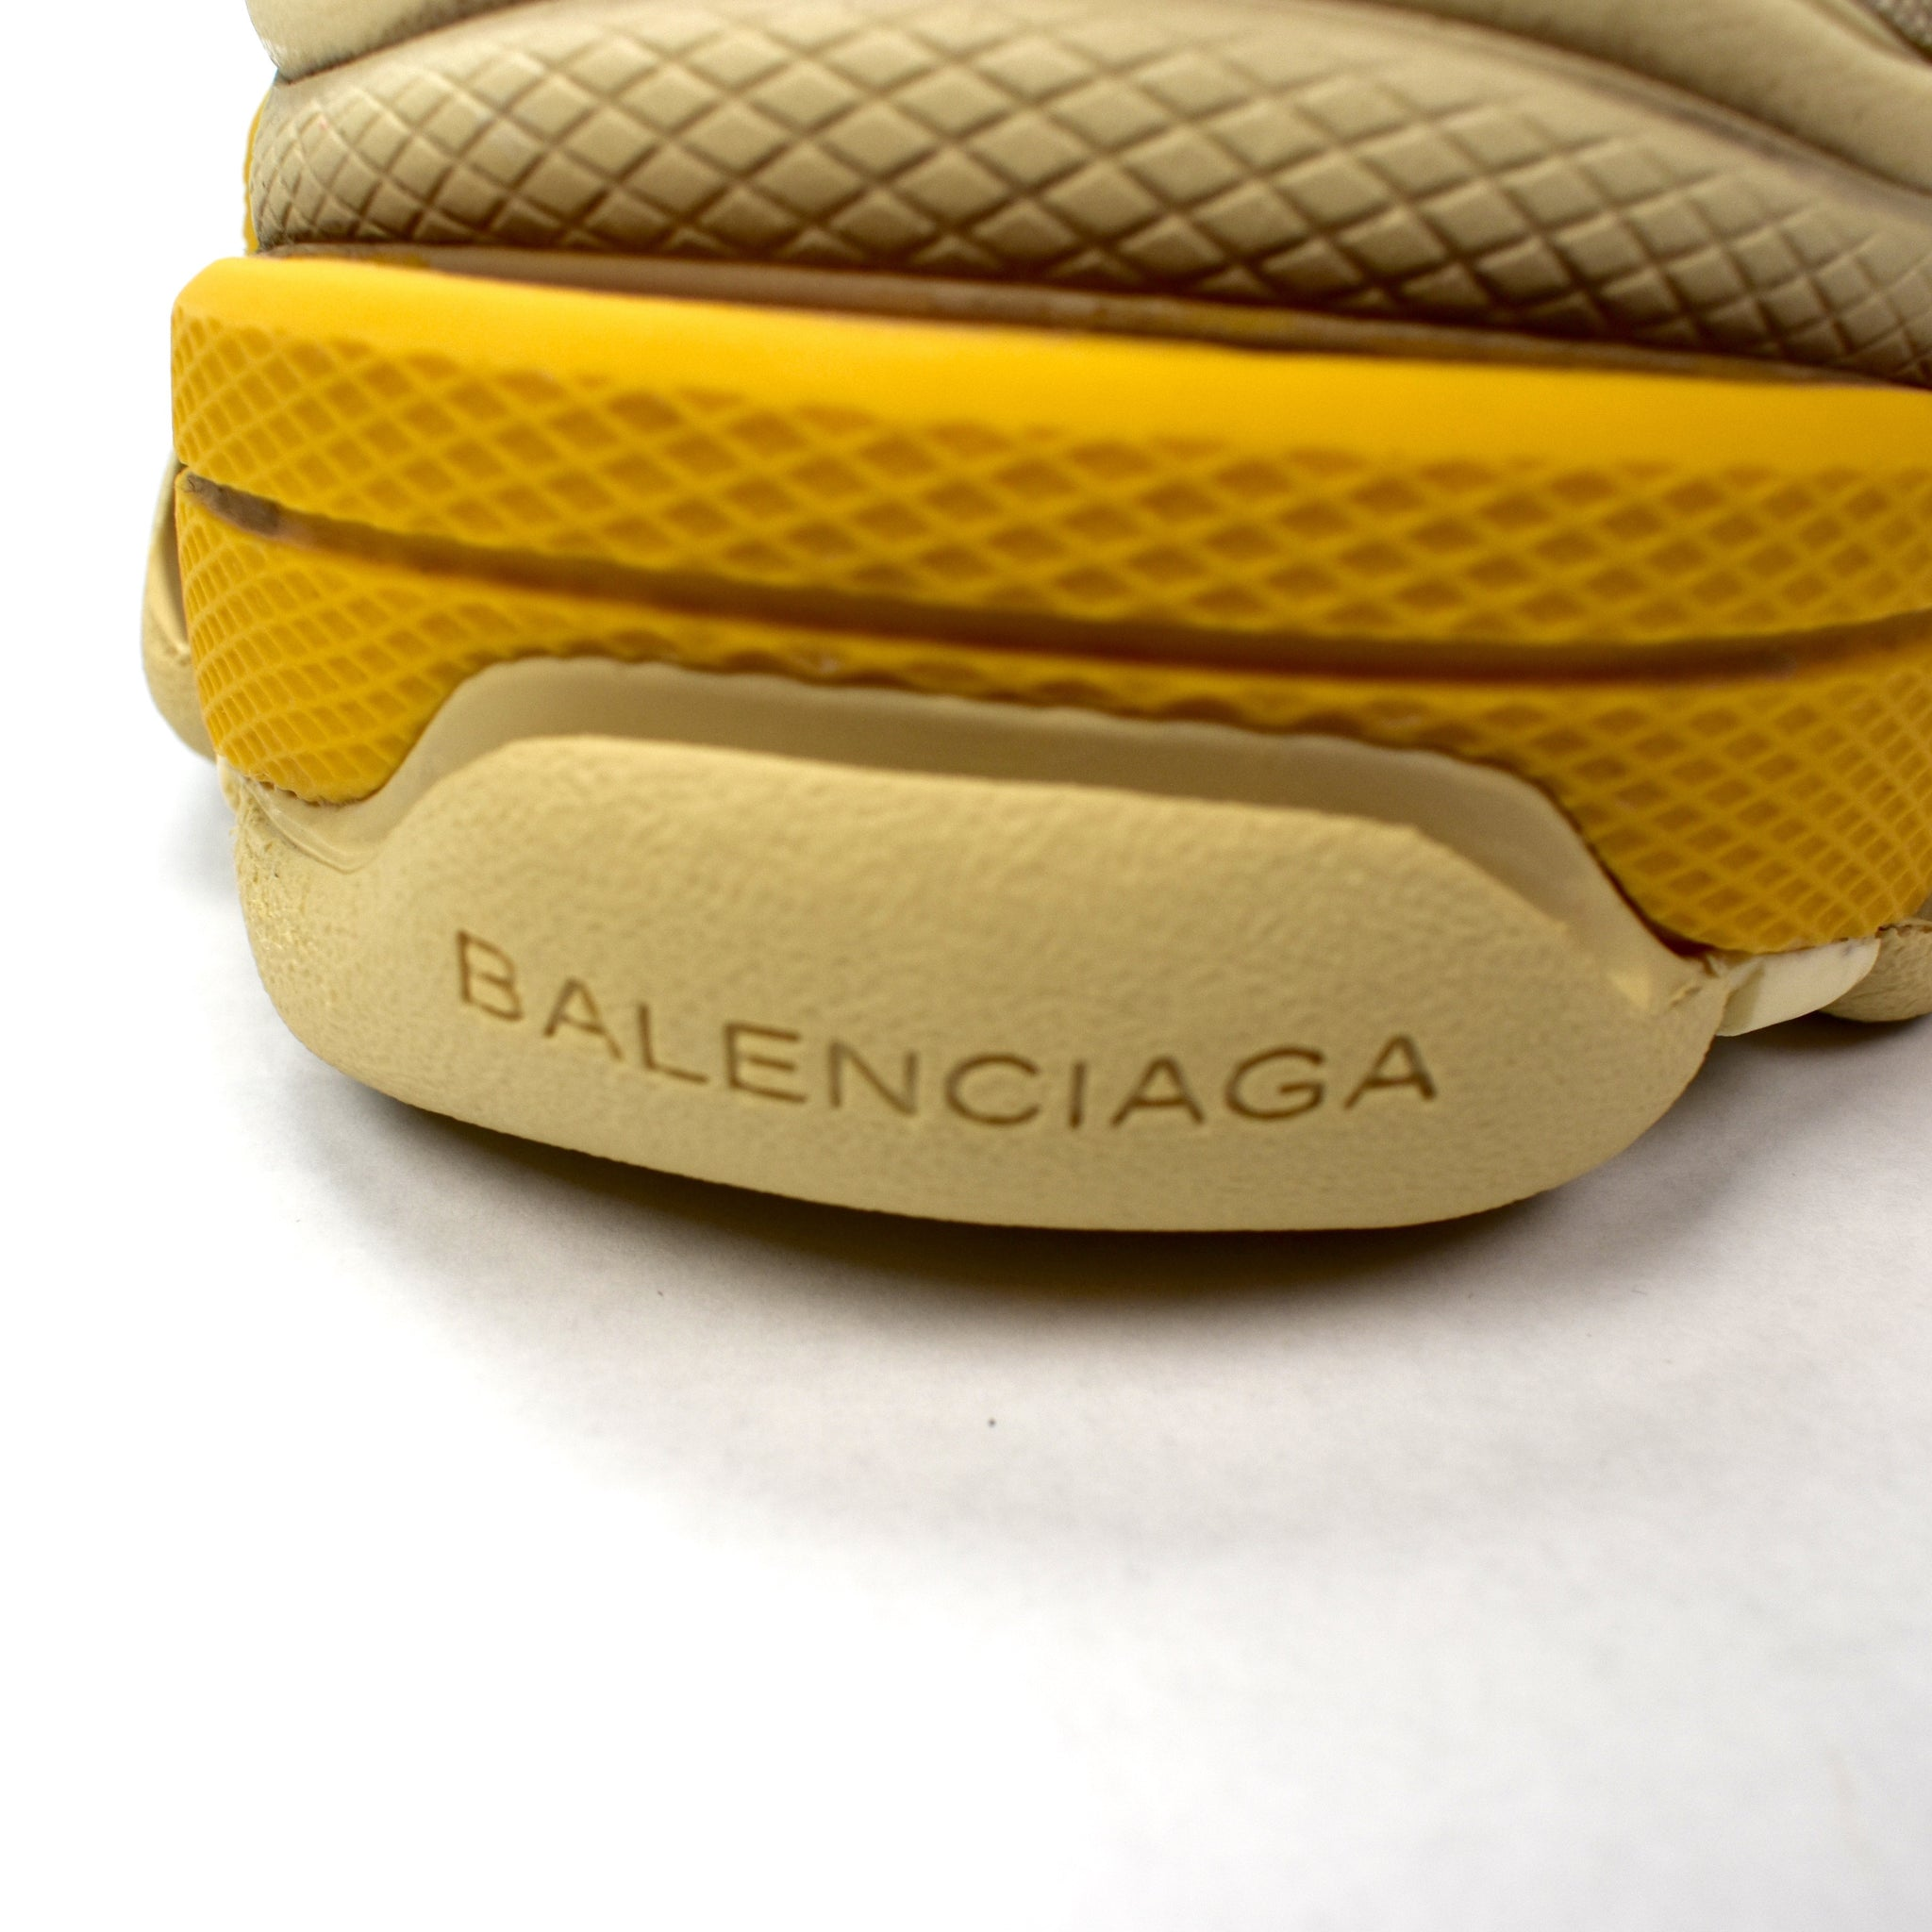 Balenciaga - Triple S Trainer (Multicolor)